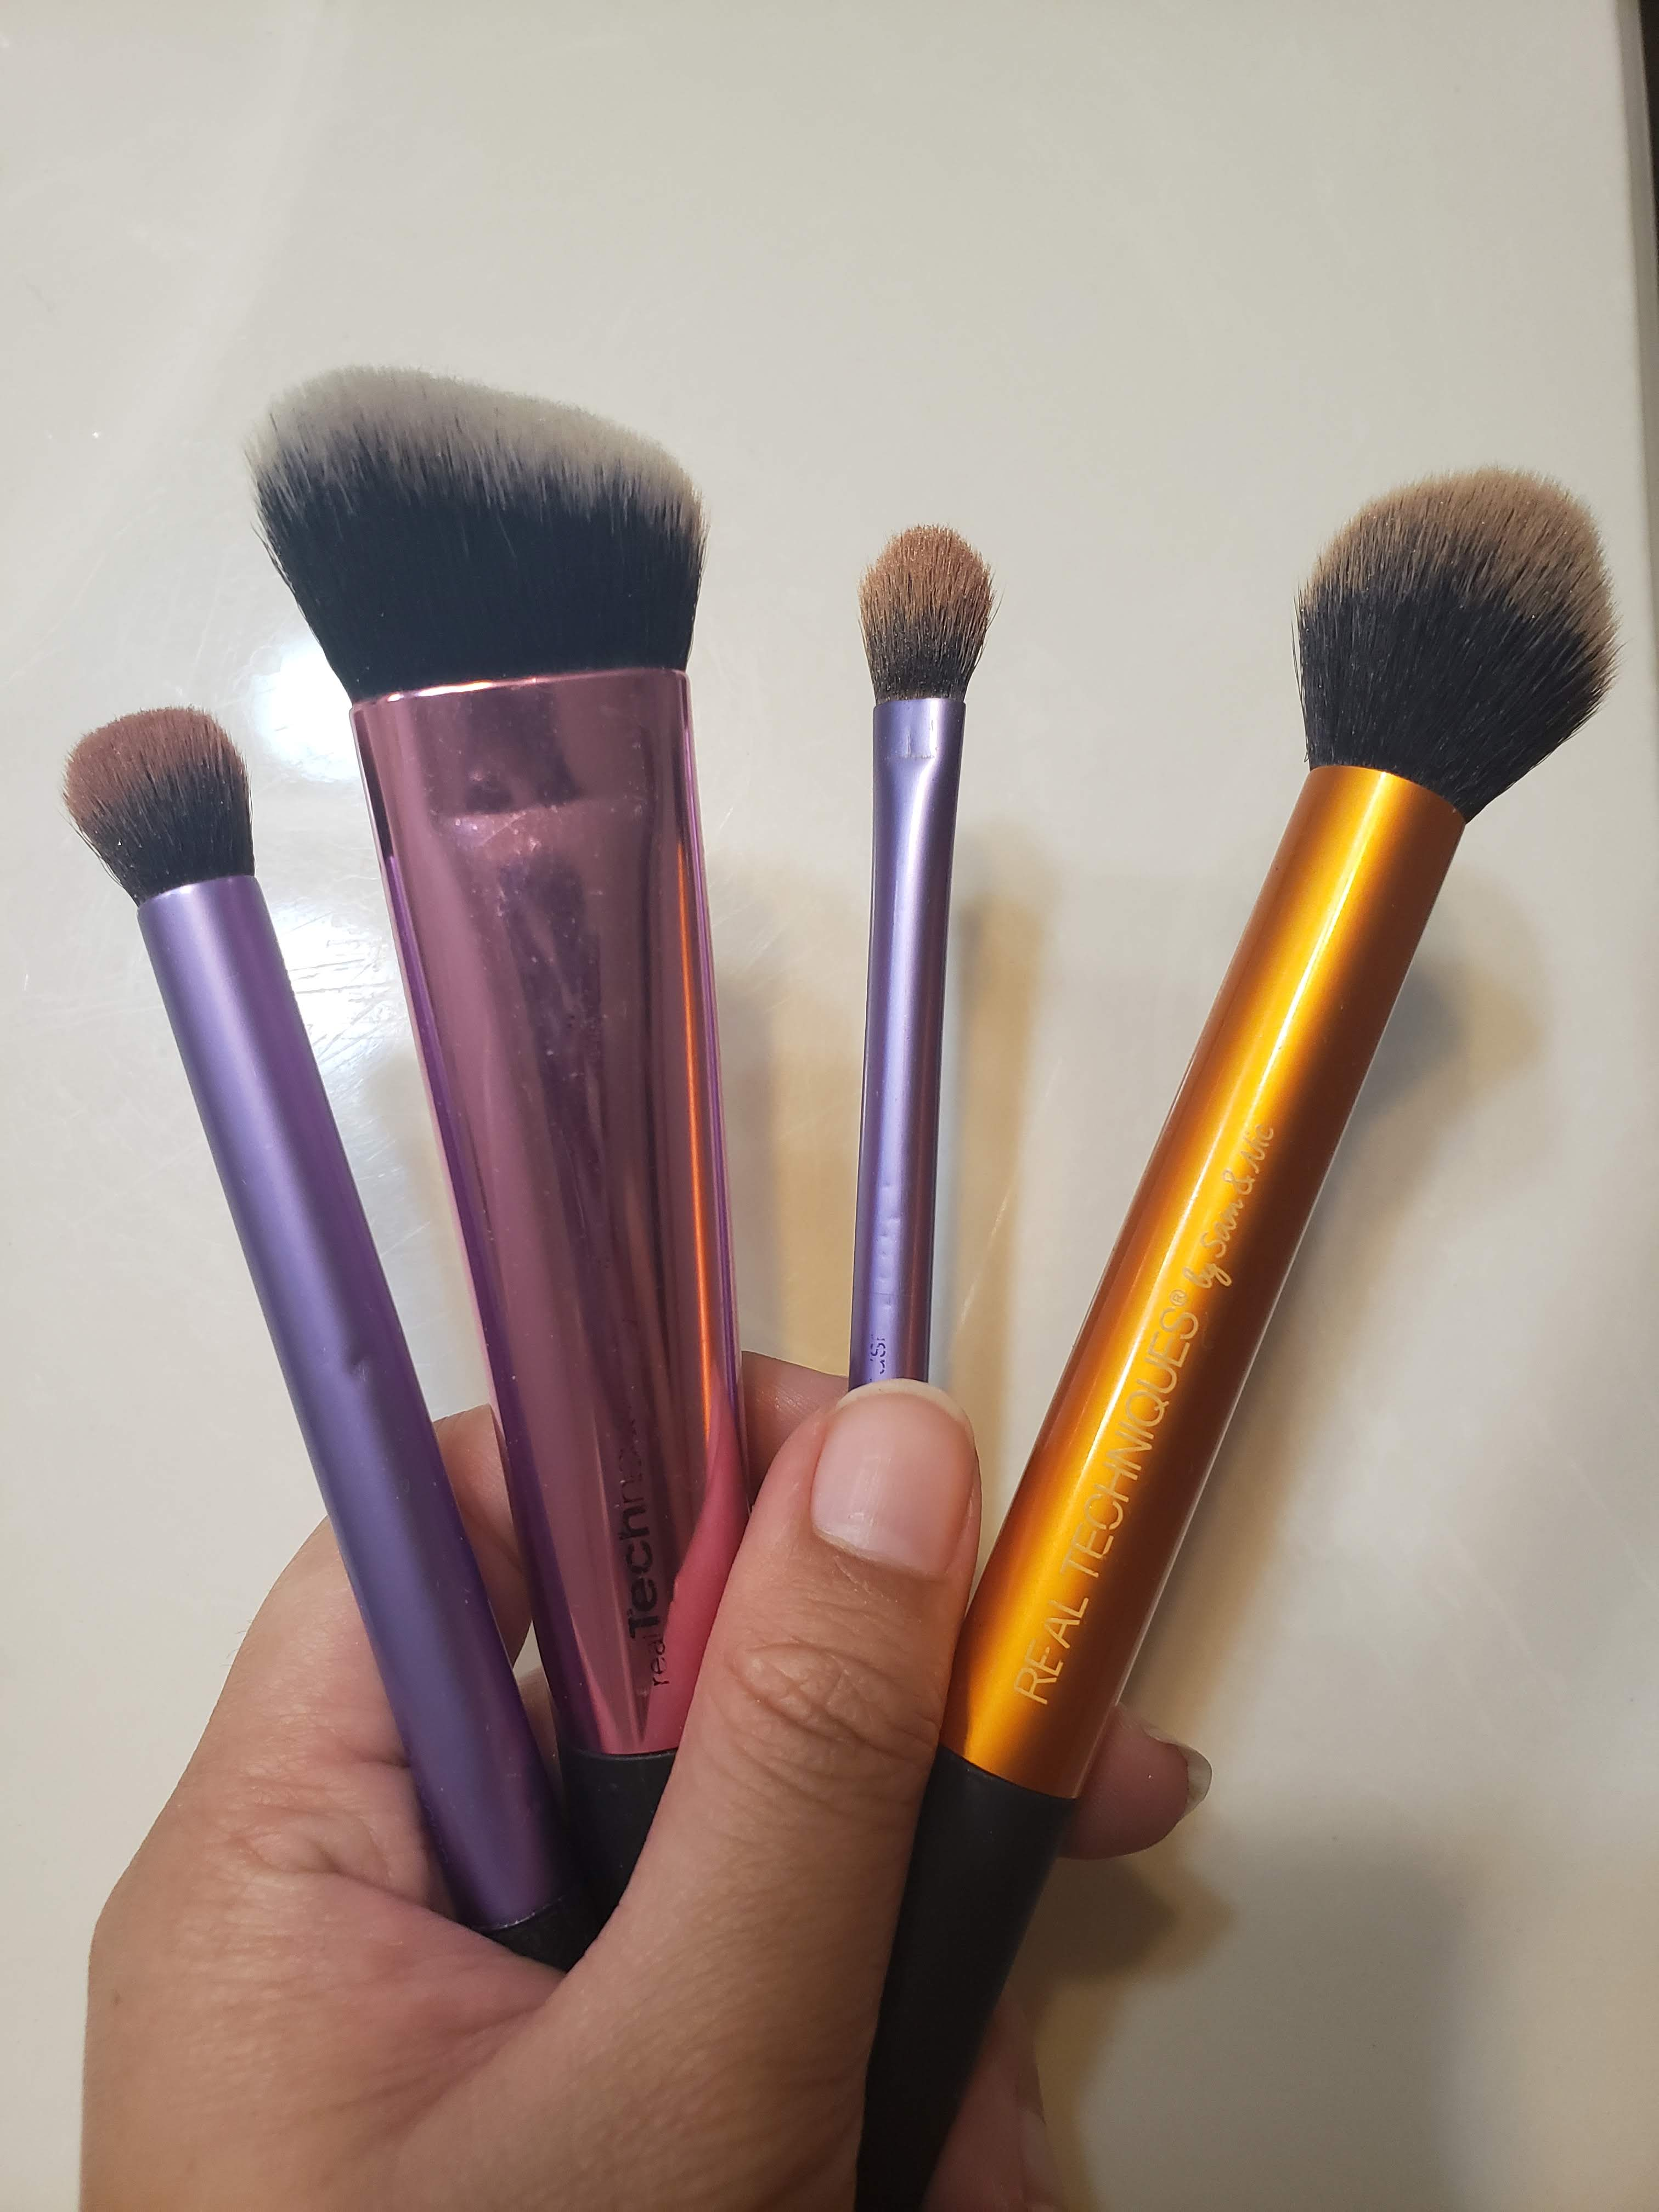 These are just a few of the brushes I have on hand. I swear by these brushes.